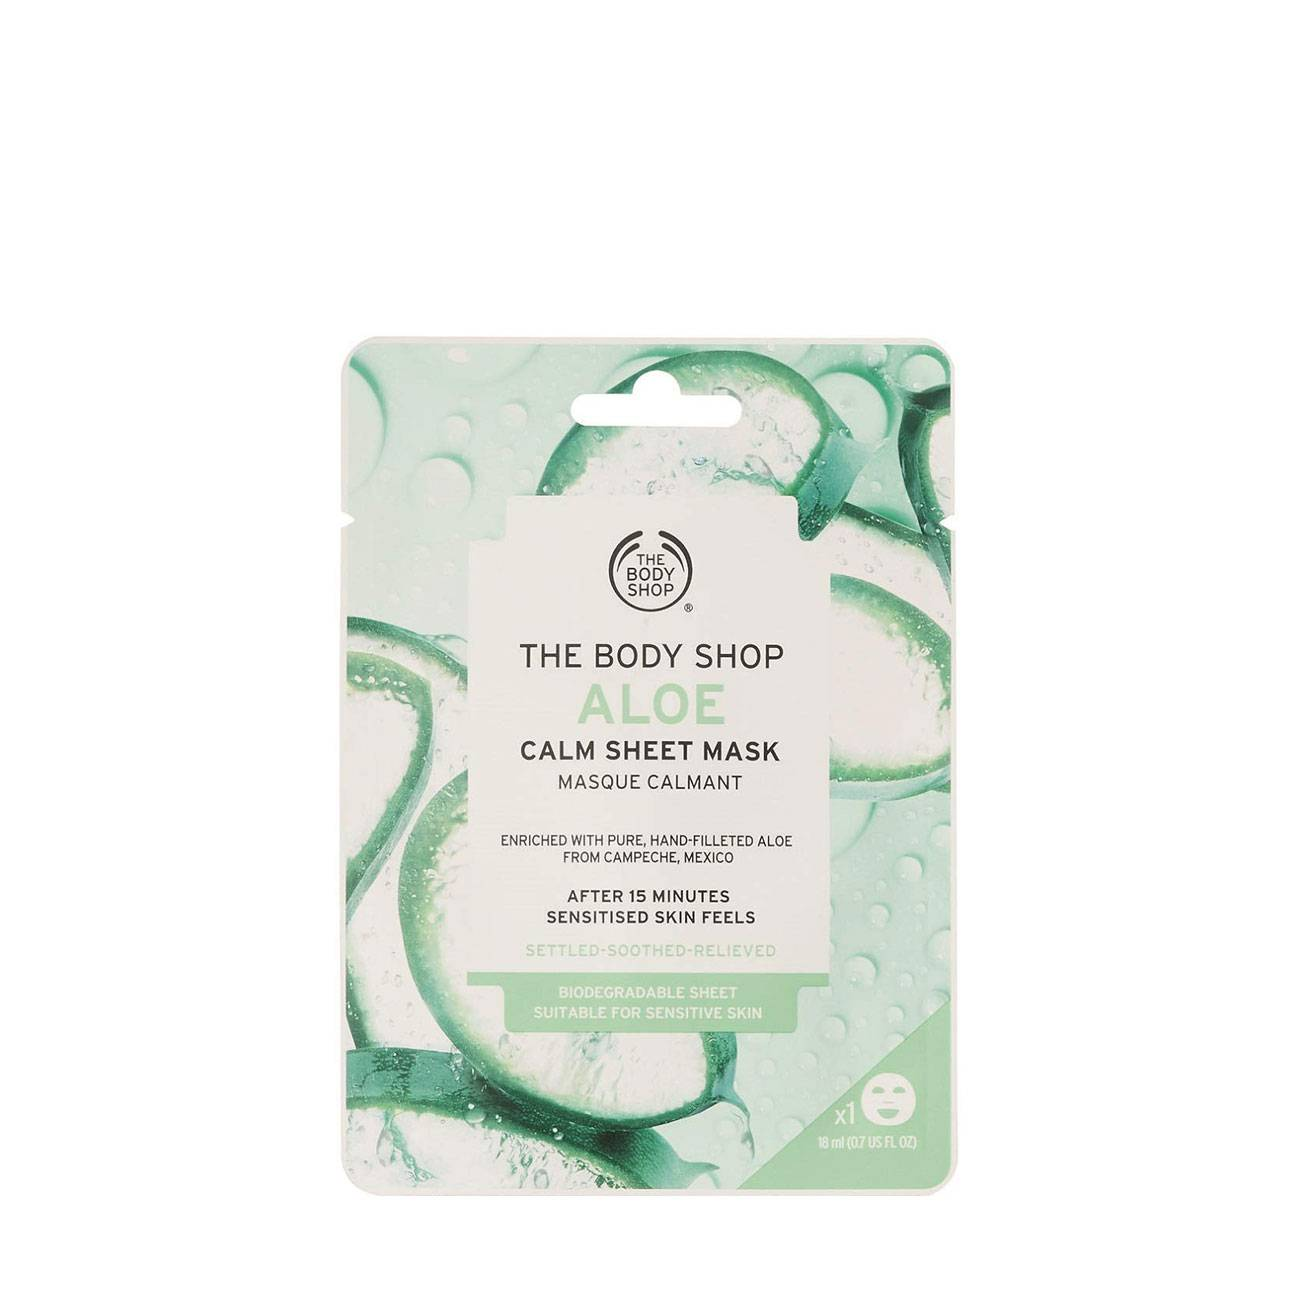 Aloe Calm Sheet Mask 18ml The Body Shop imagine 2021 bestvalue.eu